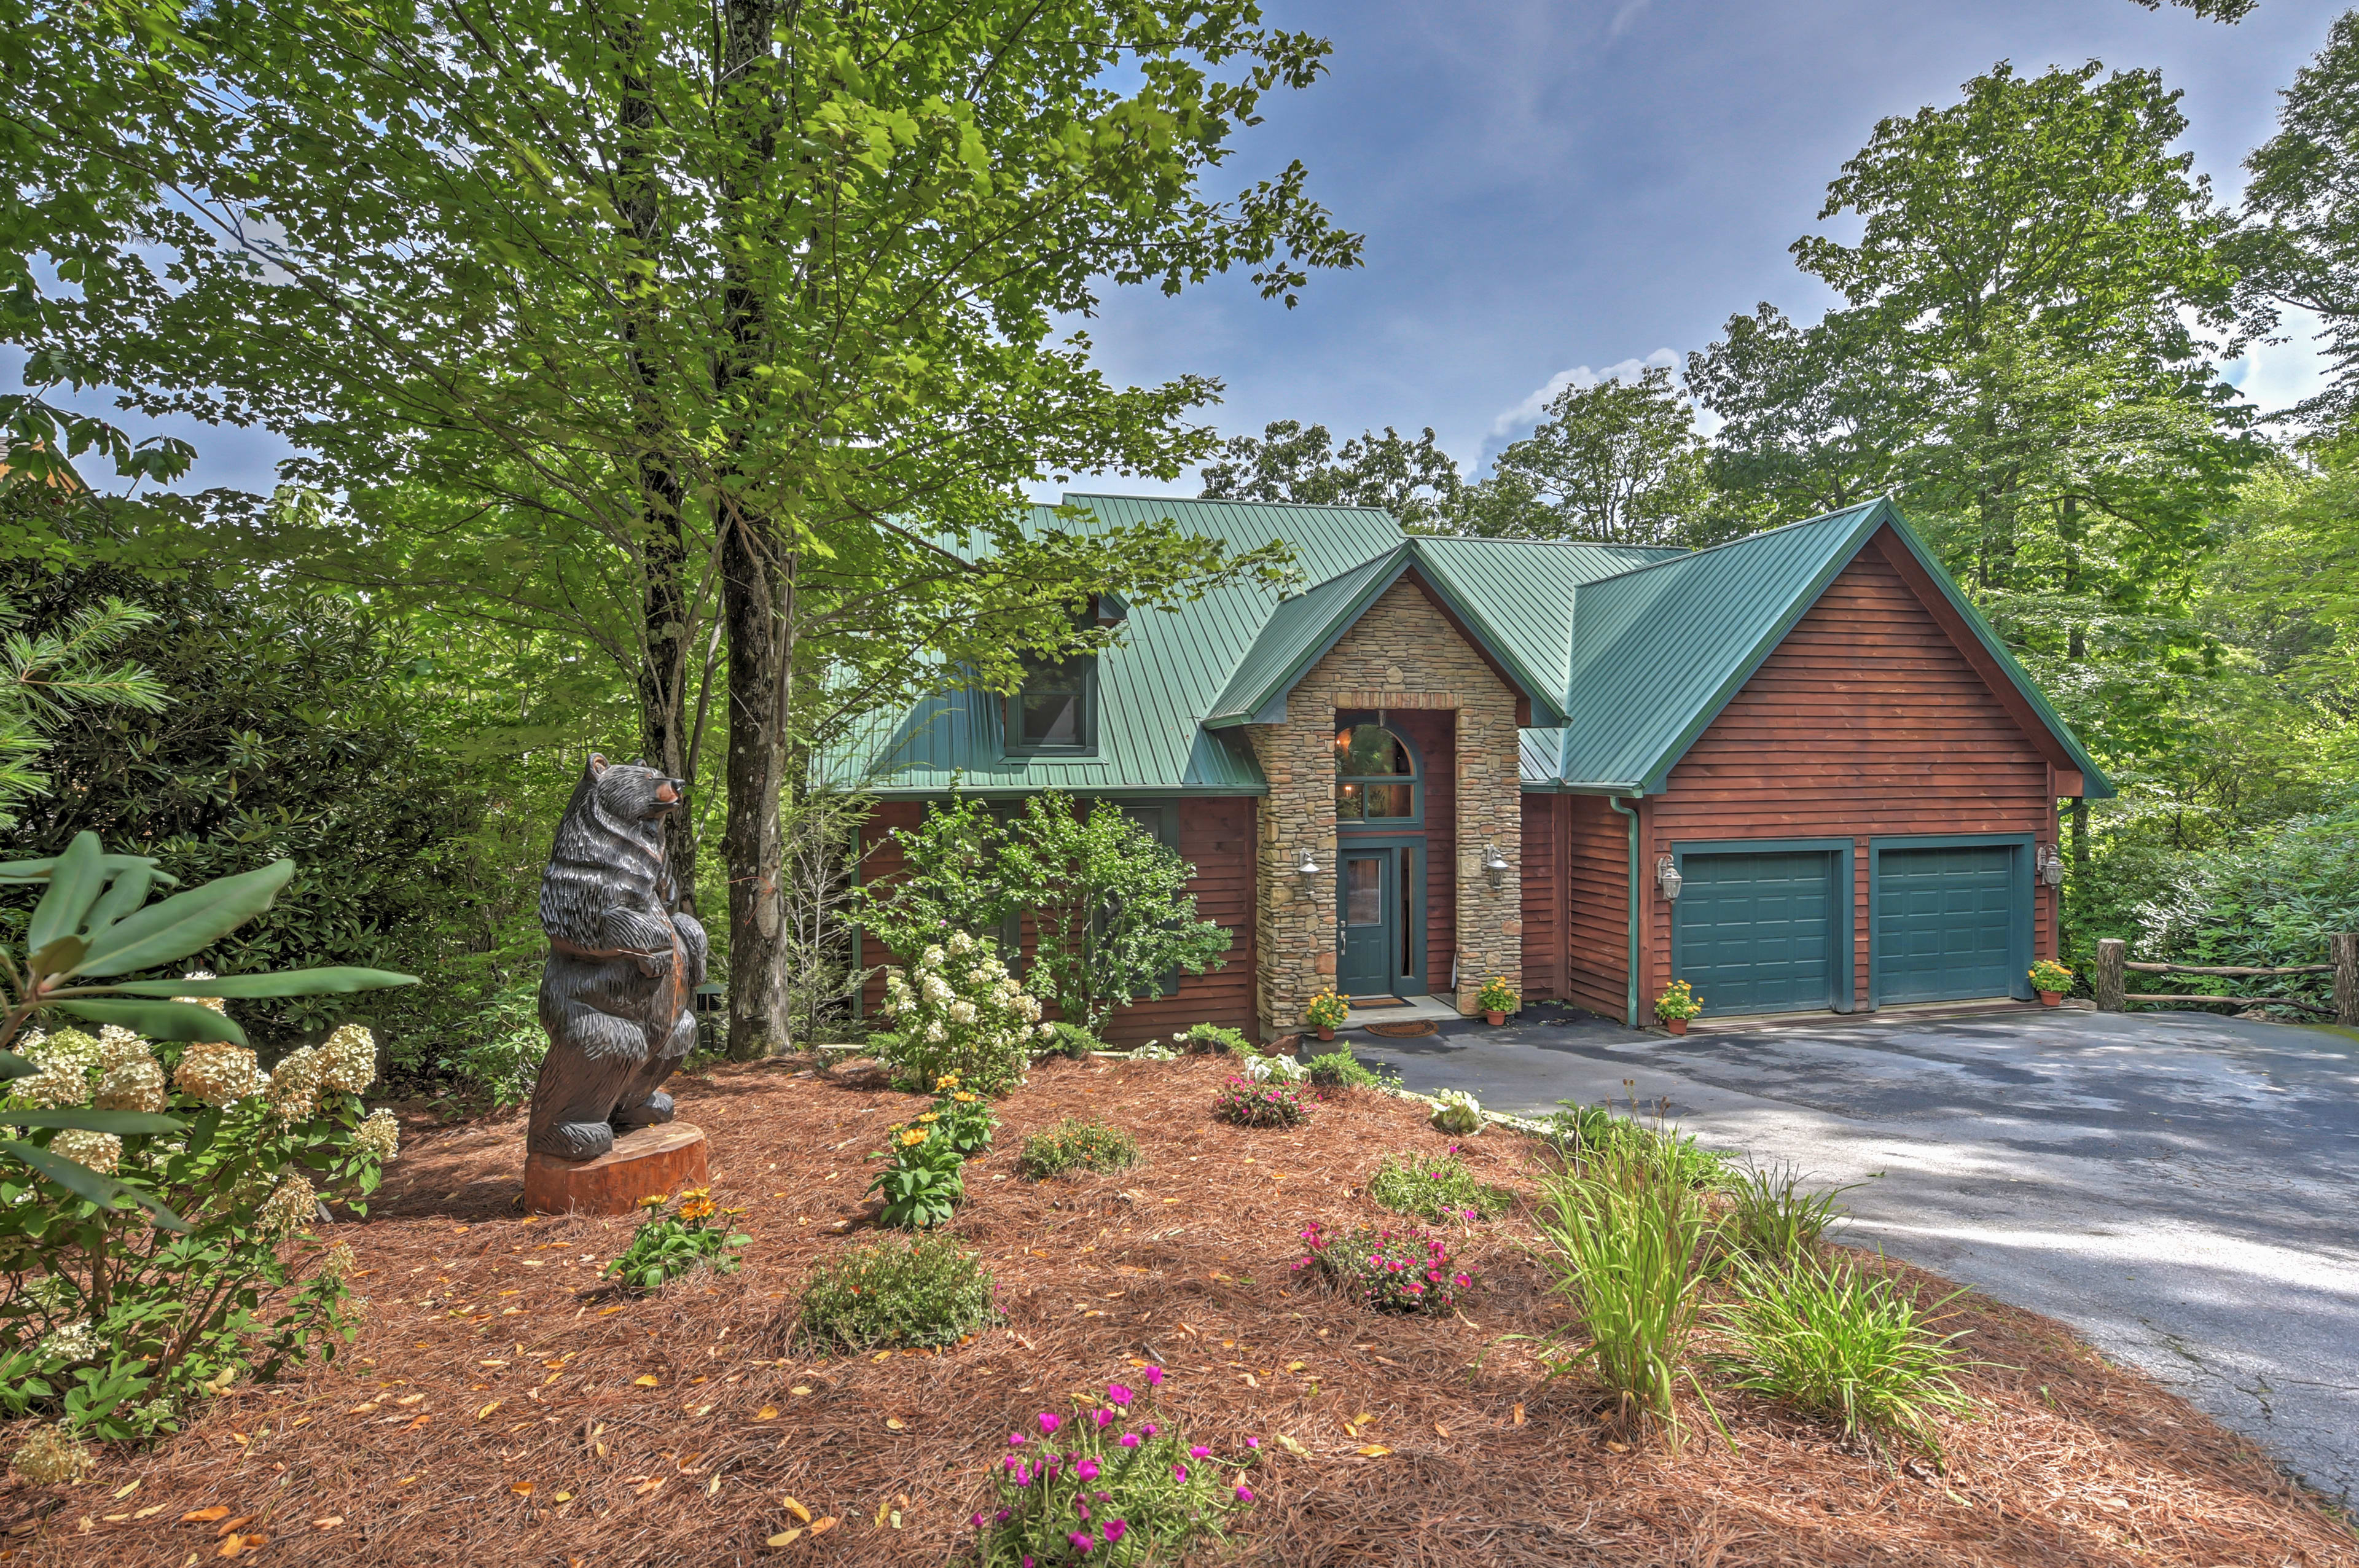 Tucked away in the woods, this property will help you feel away from it all.